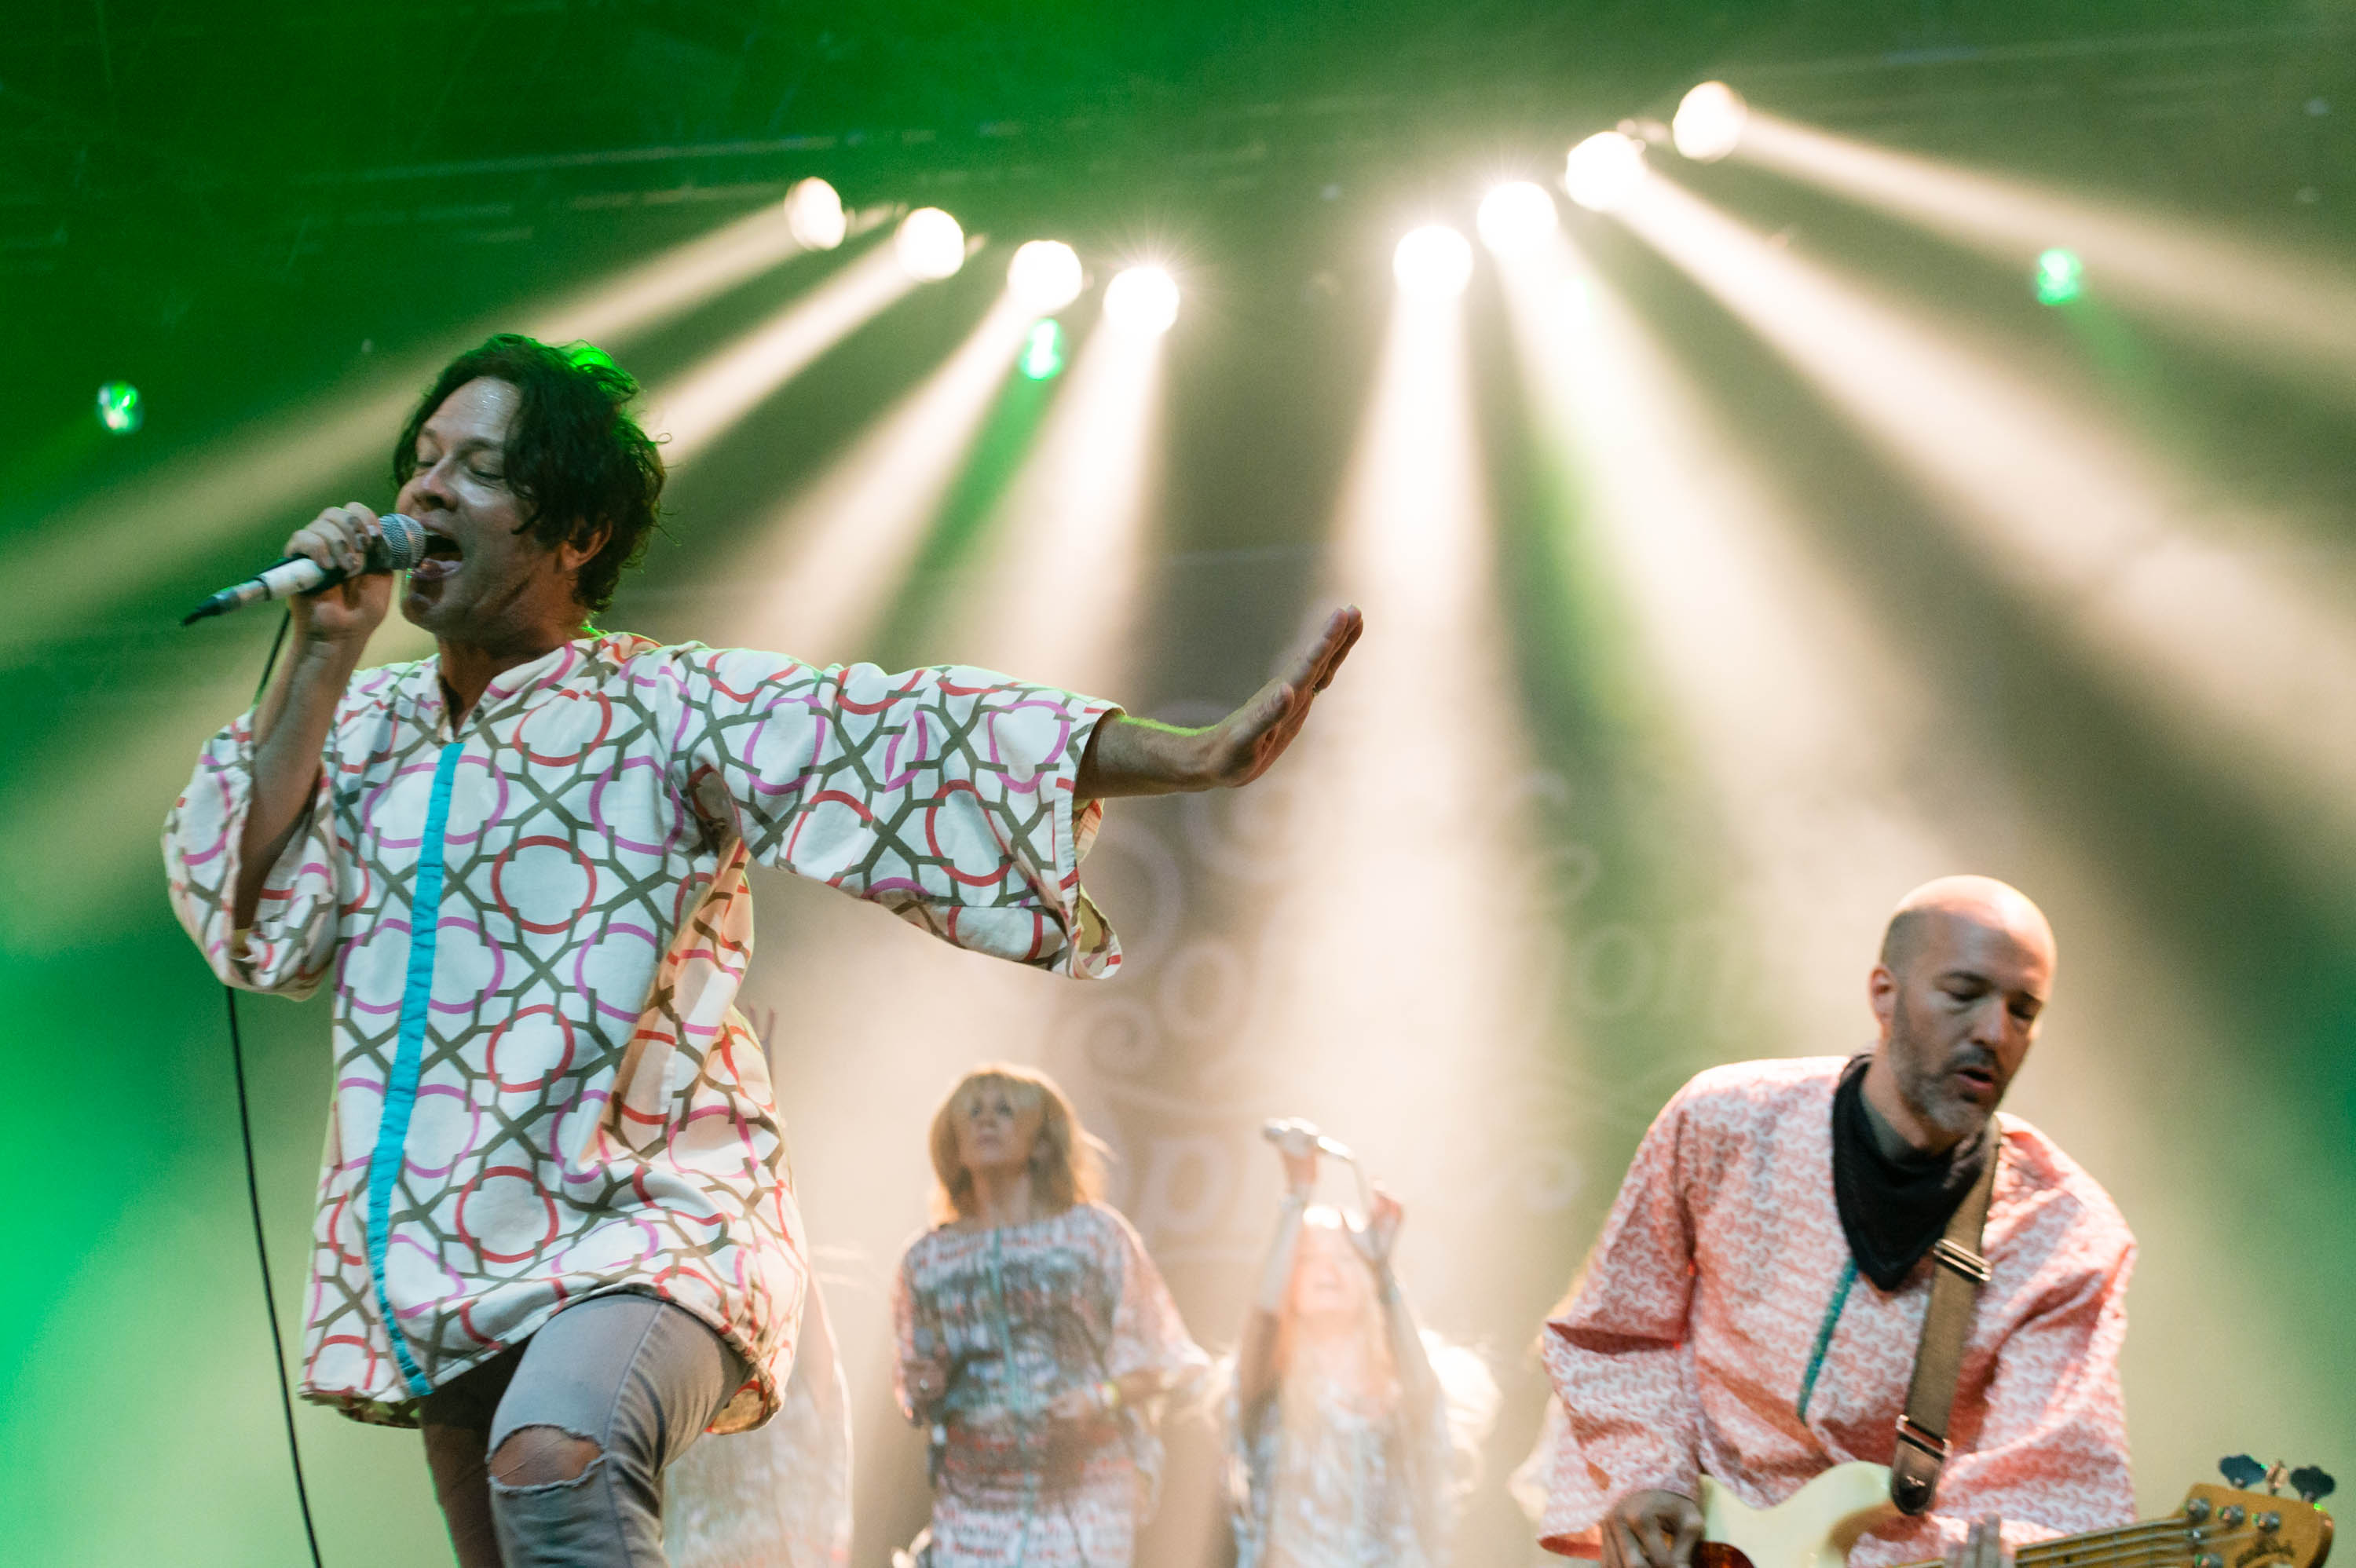 Polyphonic Spree Announce #CareForTheCaravan Show Benefiting Border Refugees, Migrants